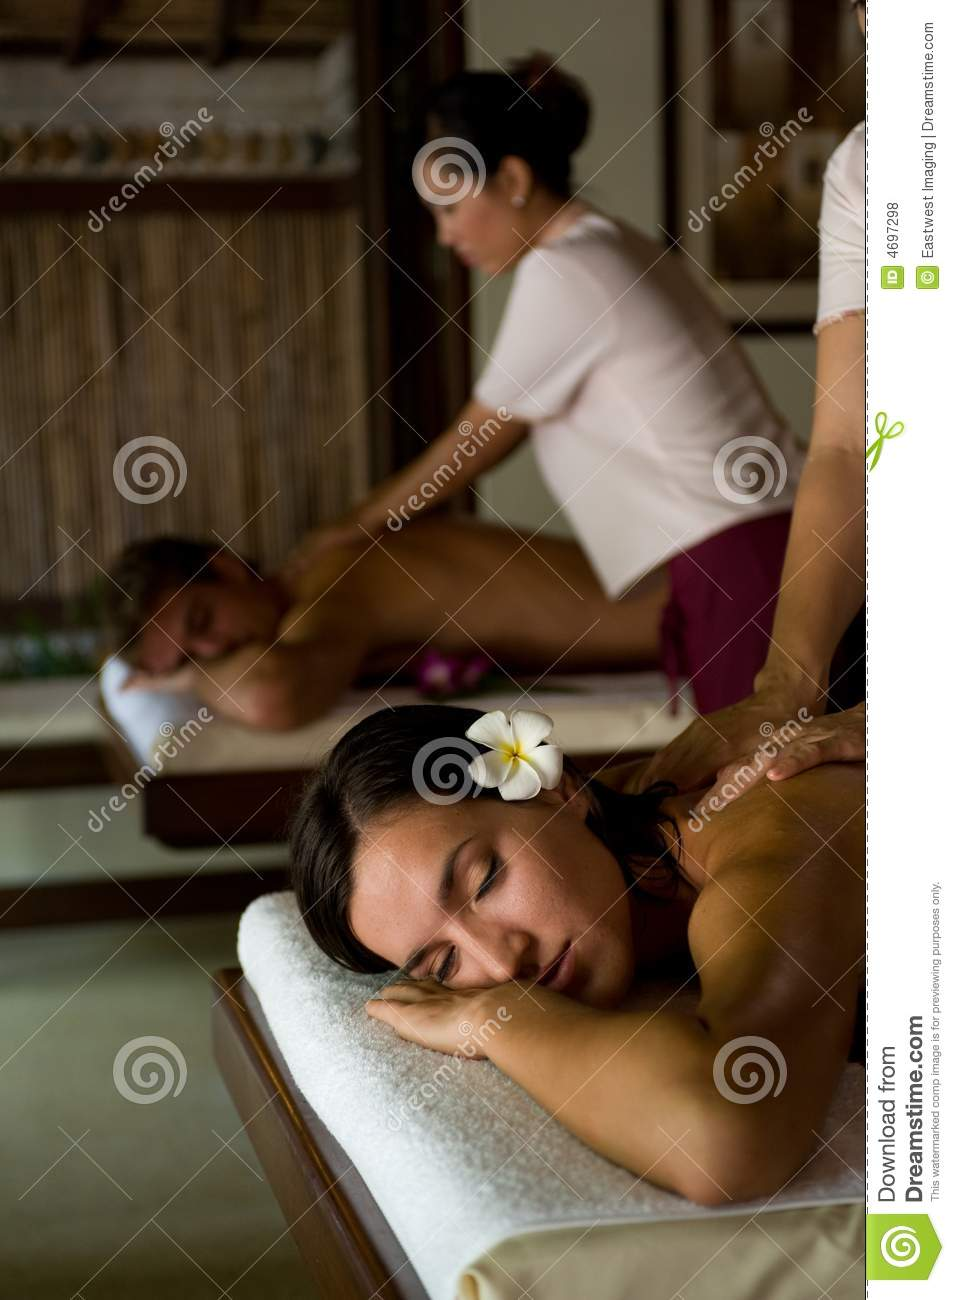 couples-massage-4697298 Enhance Your Business With a new European Bath Massage Chair